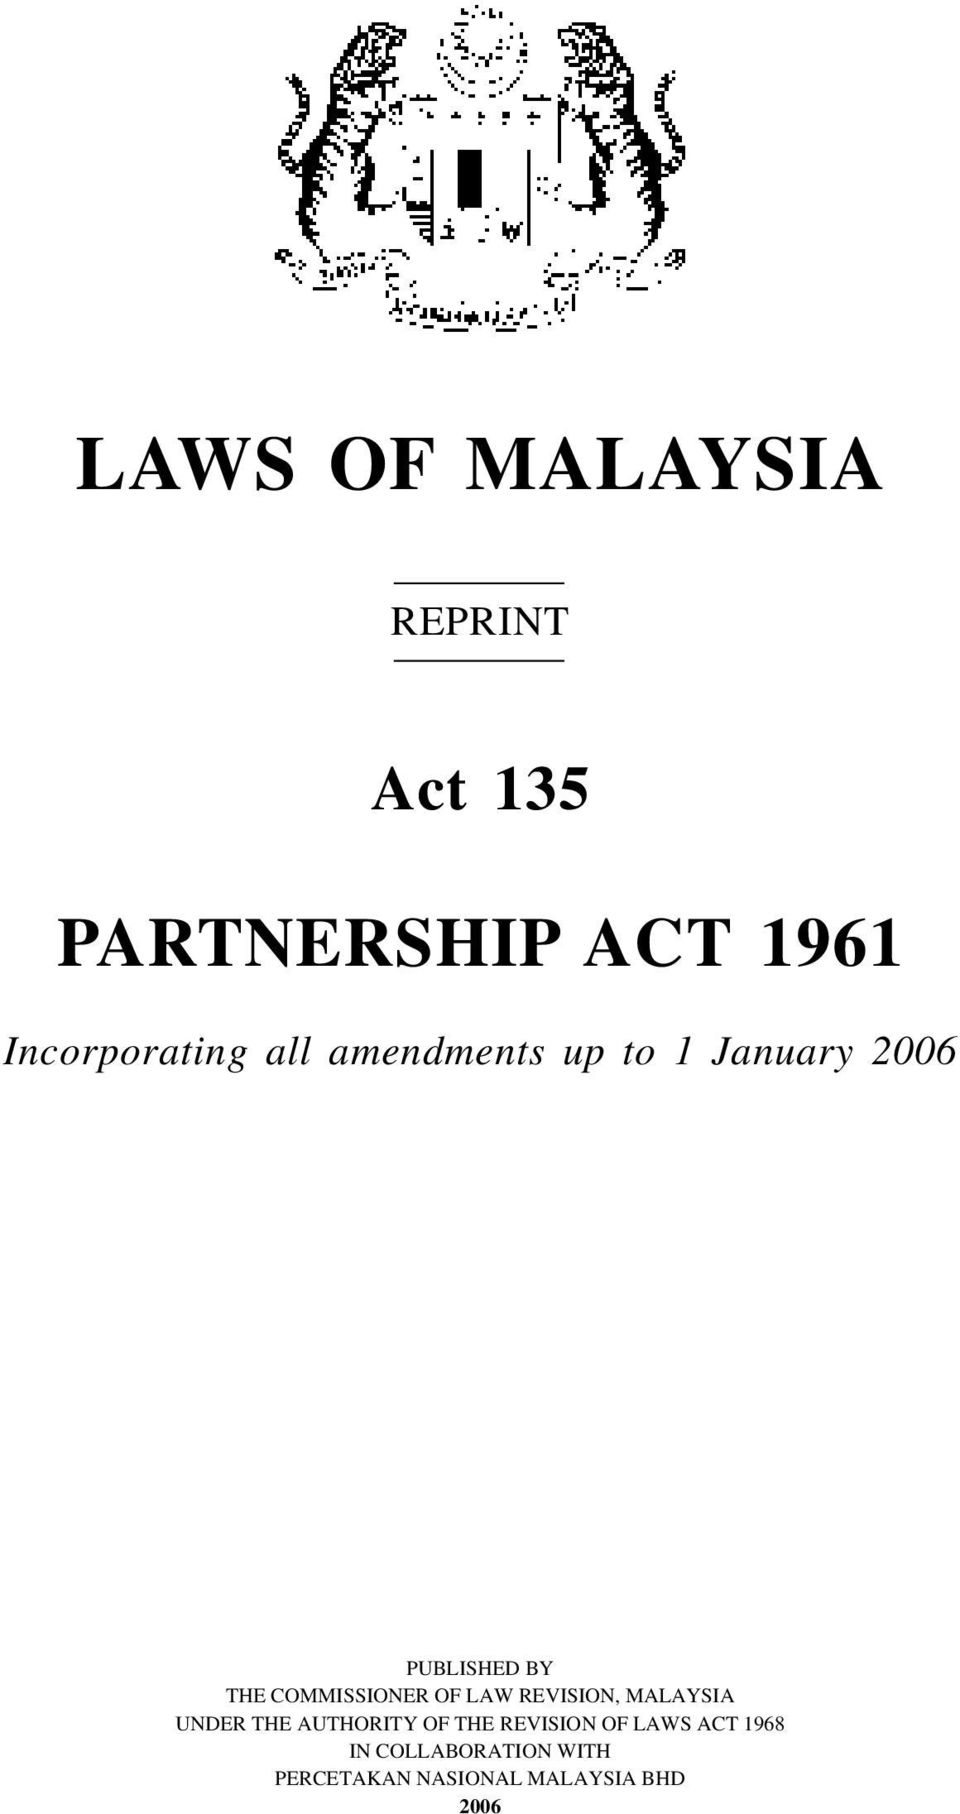 OF LAW REVISION, MALAYSIA UNDER THE AUTHORITY OF THE REVISION OF